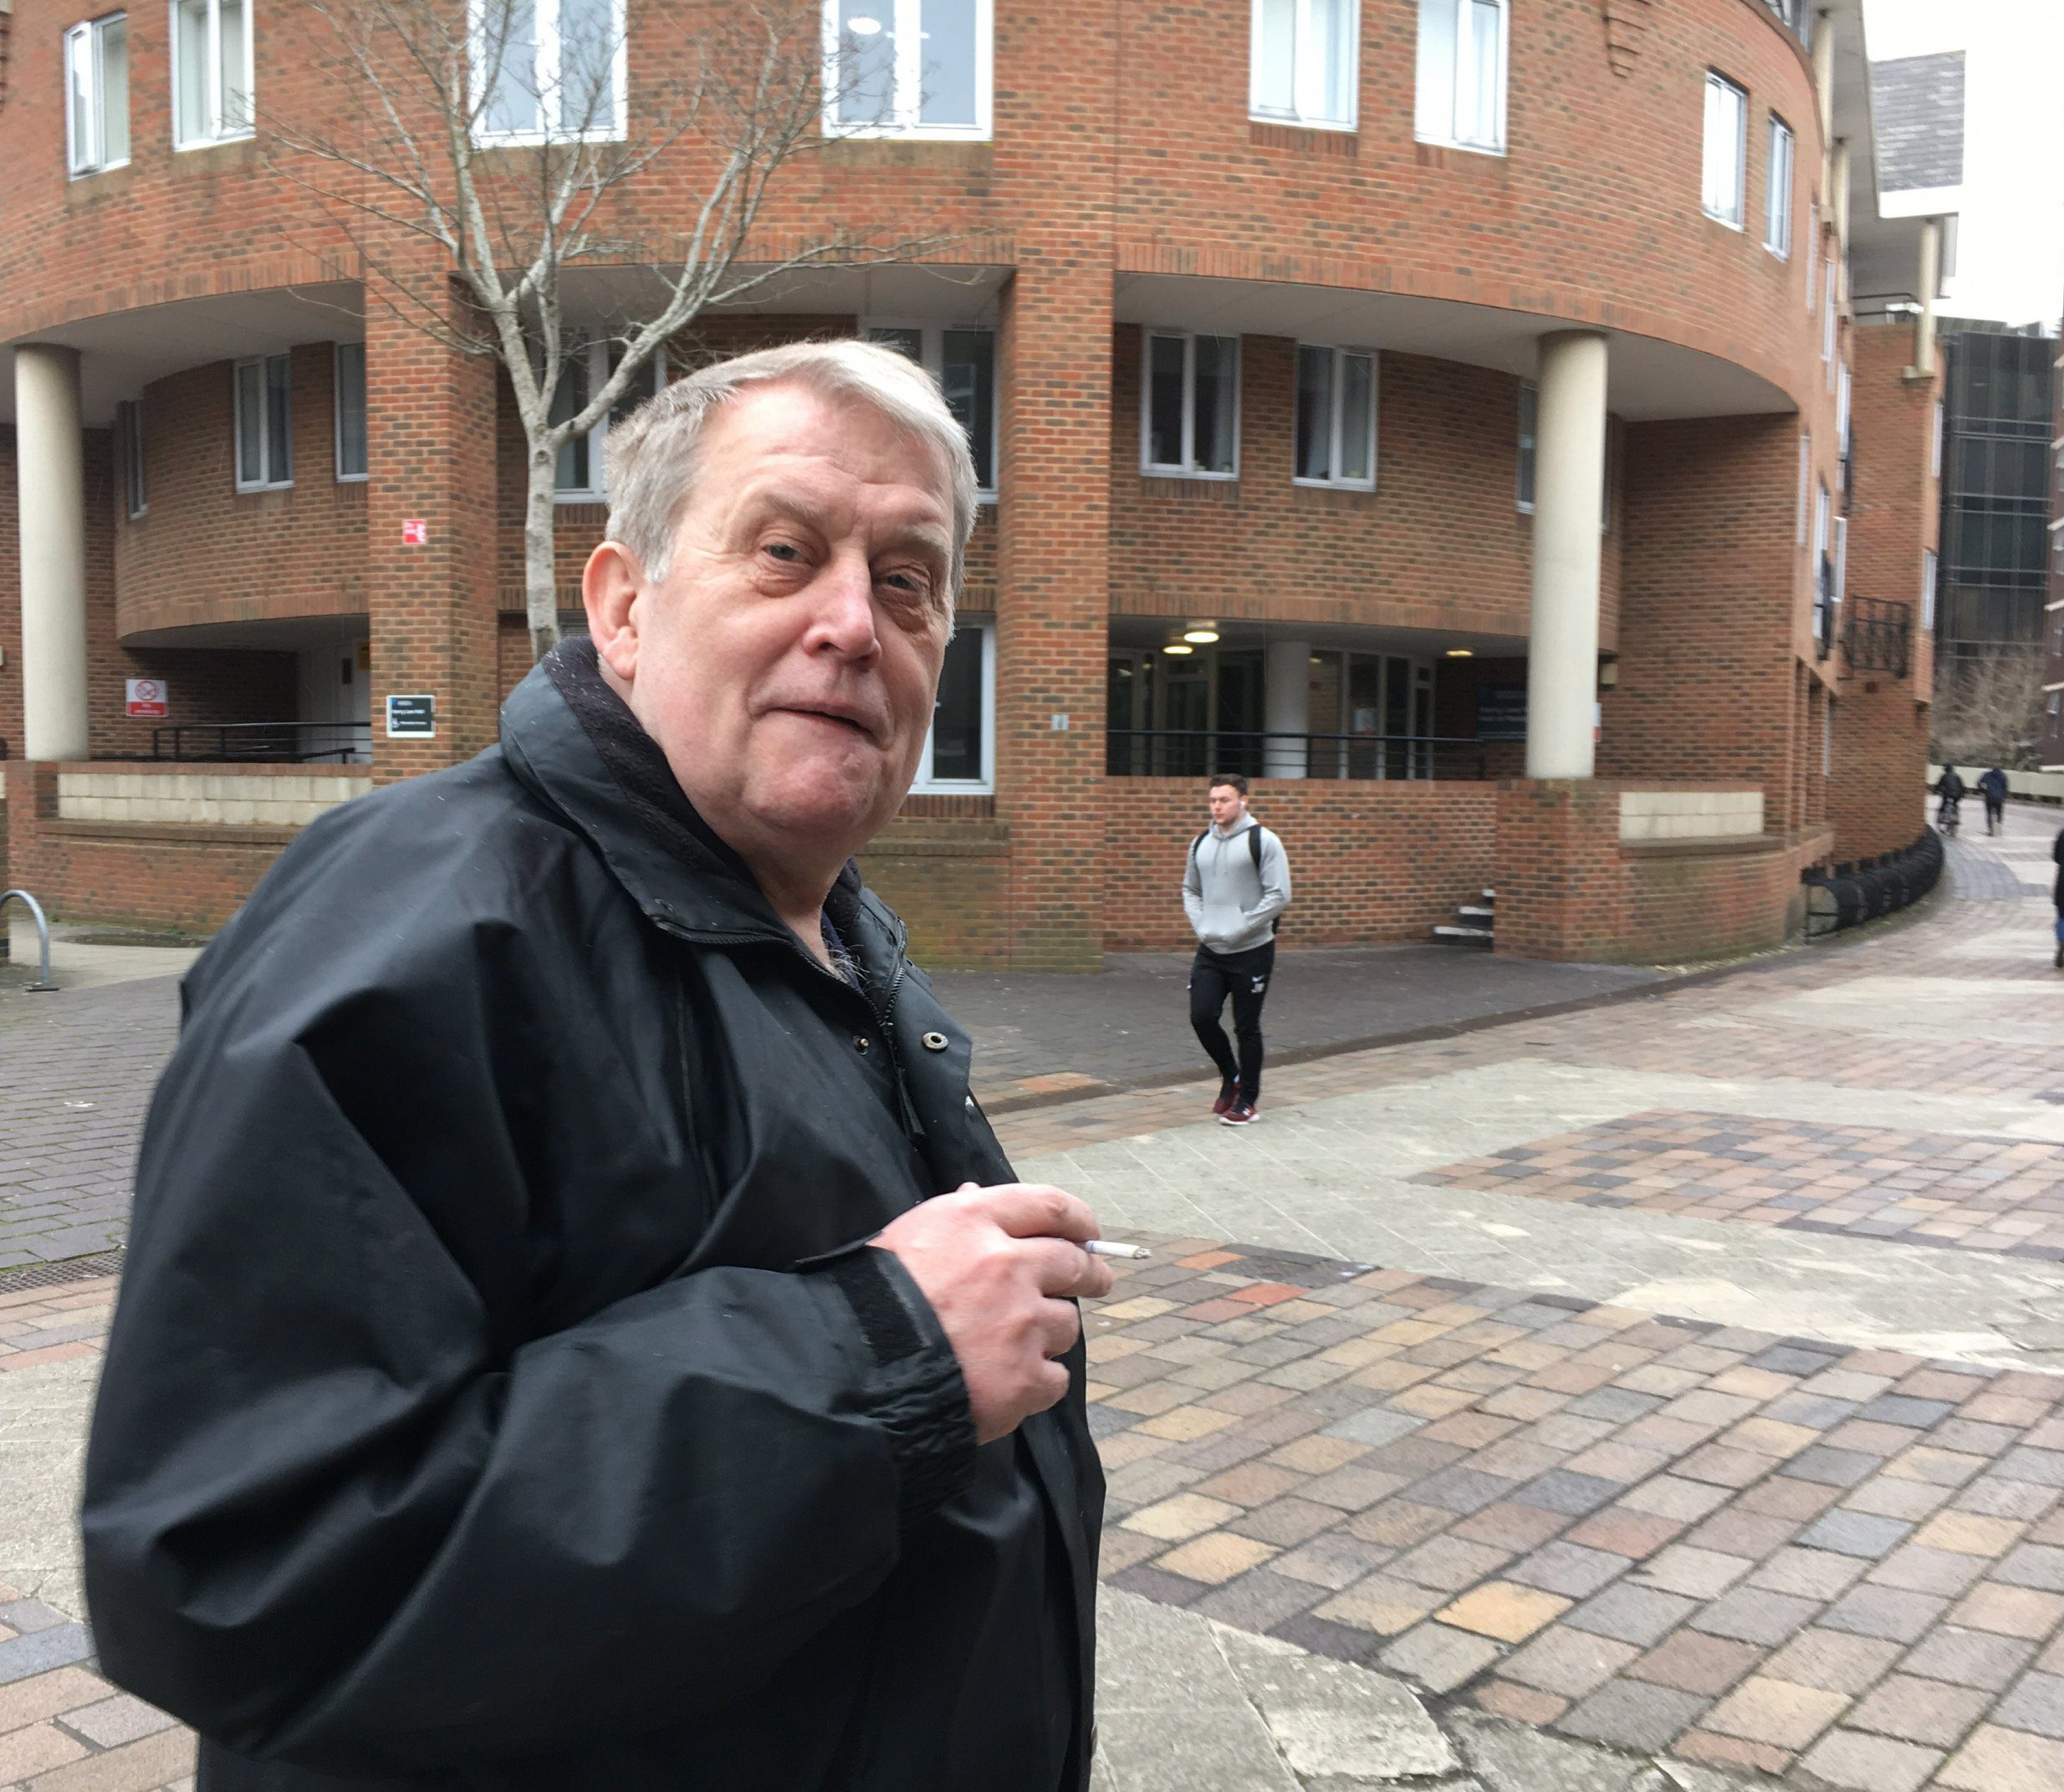 Pictured: Paul Dunster A 'disgusting' landlord who planted cameras in his tenants' rooms to watch them while they were showering and having sex was fined ?5,000. Paul Dunster, 59, was found with 183 videos of unsuspecting women who had rented rooms from him over a 10 year period. Dunster initially denied two charges of voyeurism but later admitted making the secret videos after setting up cameras in the bedroom and bathroom of one of the properties he rented out. Police raided former security worker Dunster's home in Portsmouth, Hants, and found two memory cards containing the voyeuristic videos. SEE OUR COPY FOR MORE DETAILS. ? Portsmouth News/Solent News & Photo Agency UK +44 (0) 2380 458800